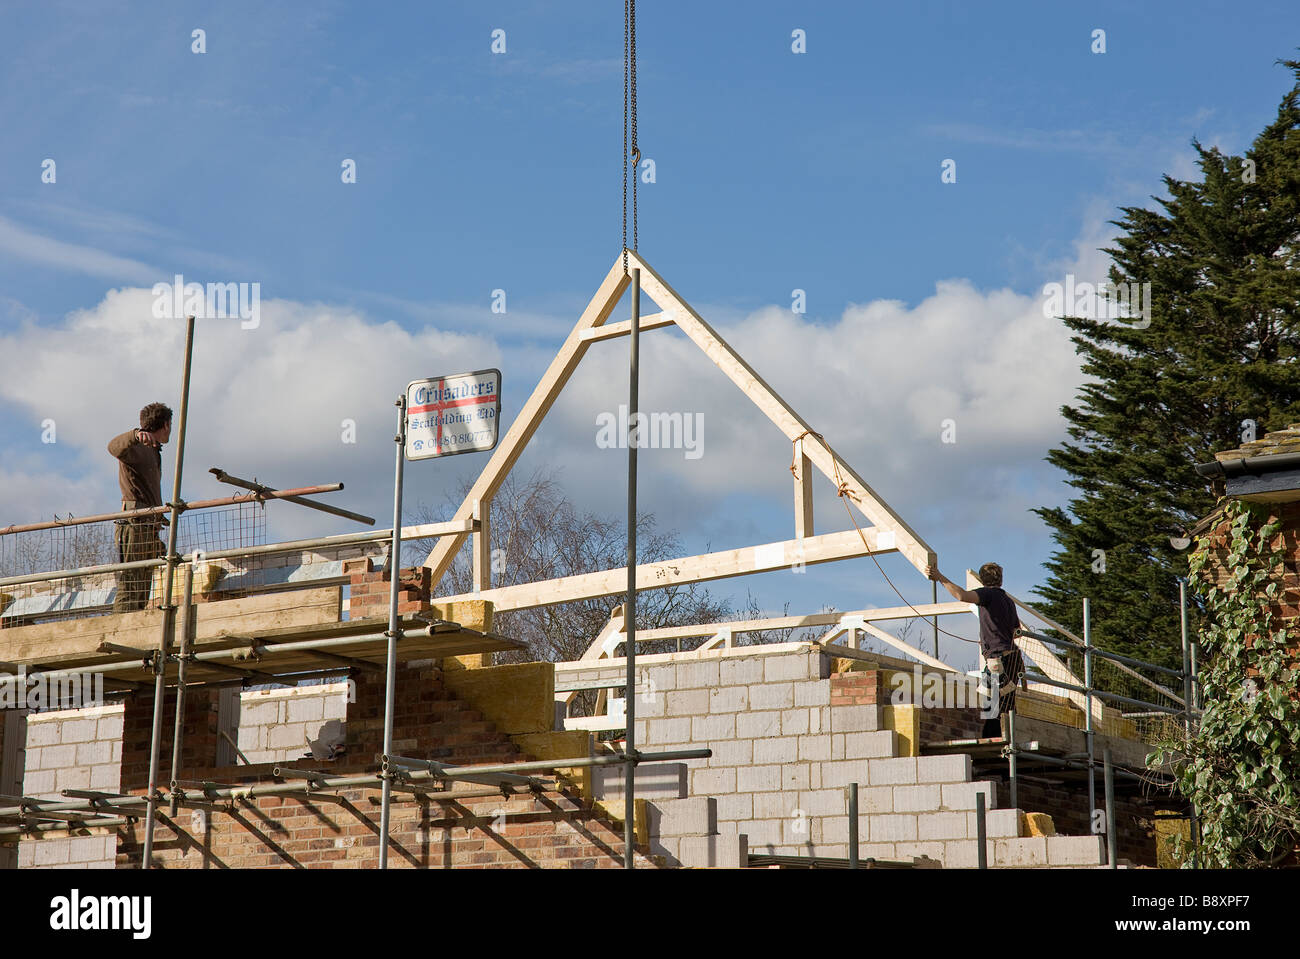 The first main roof attic truss being lowered into correct position ready to start building the roof for new house - Stock Image